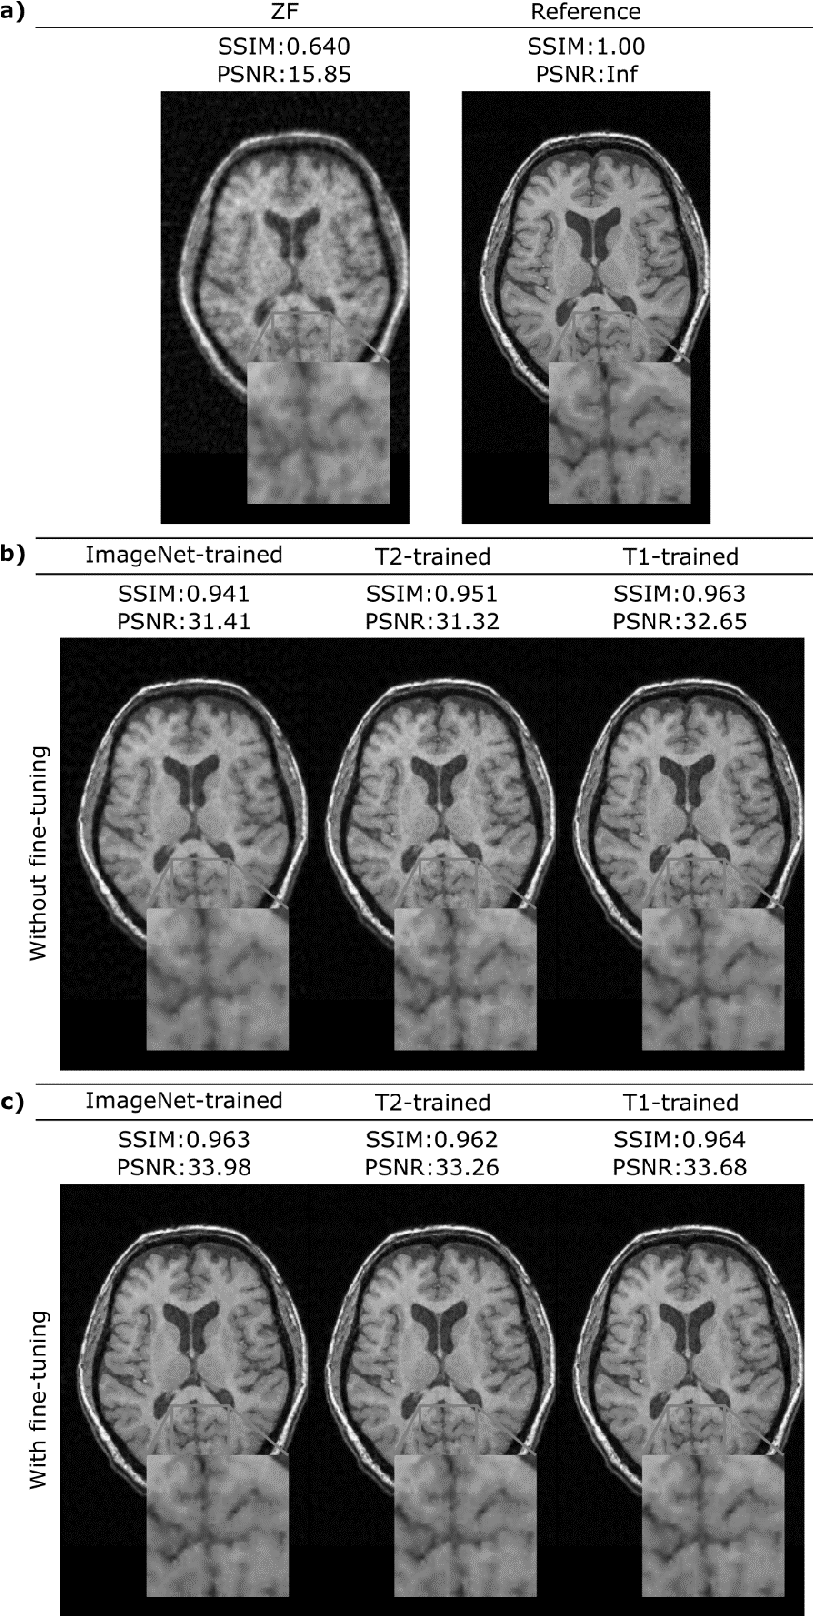 Figure 3 for A Transfer-Learning Approach for Accelerated MRI using Deep Neural Networks